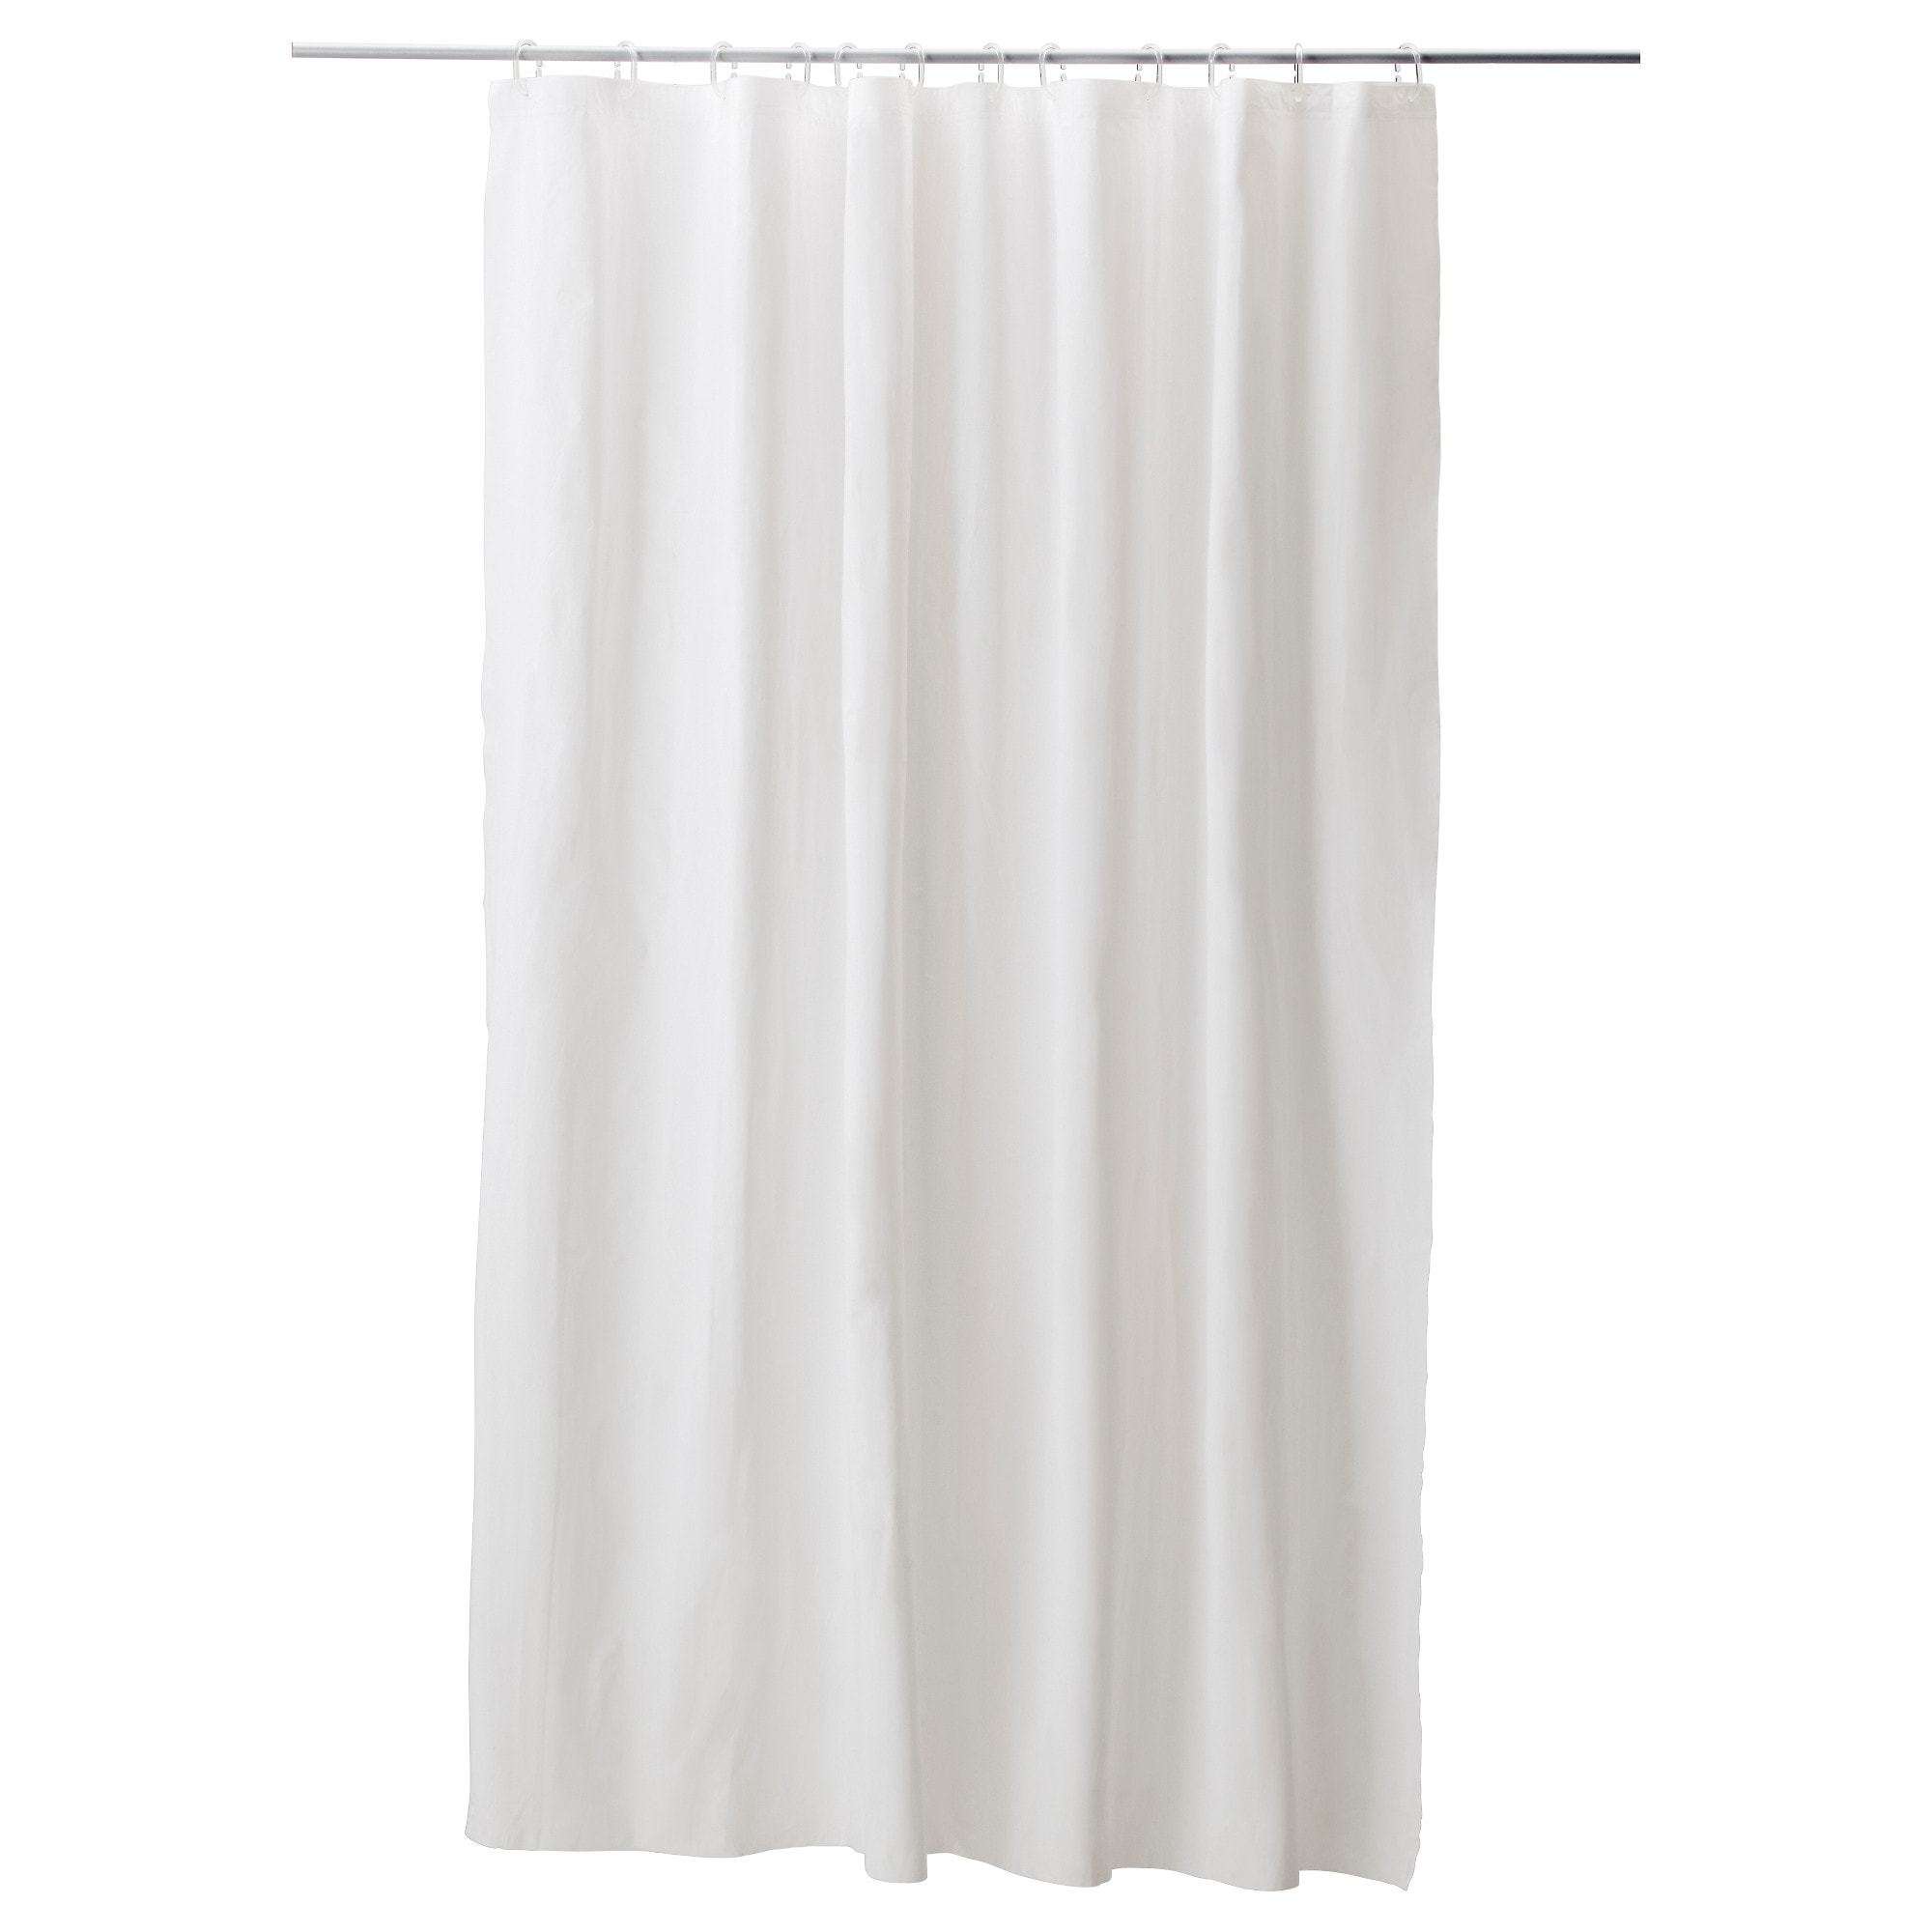 white shower curtain. White Shower Curtain E